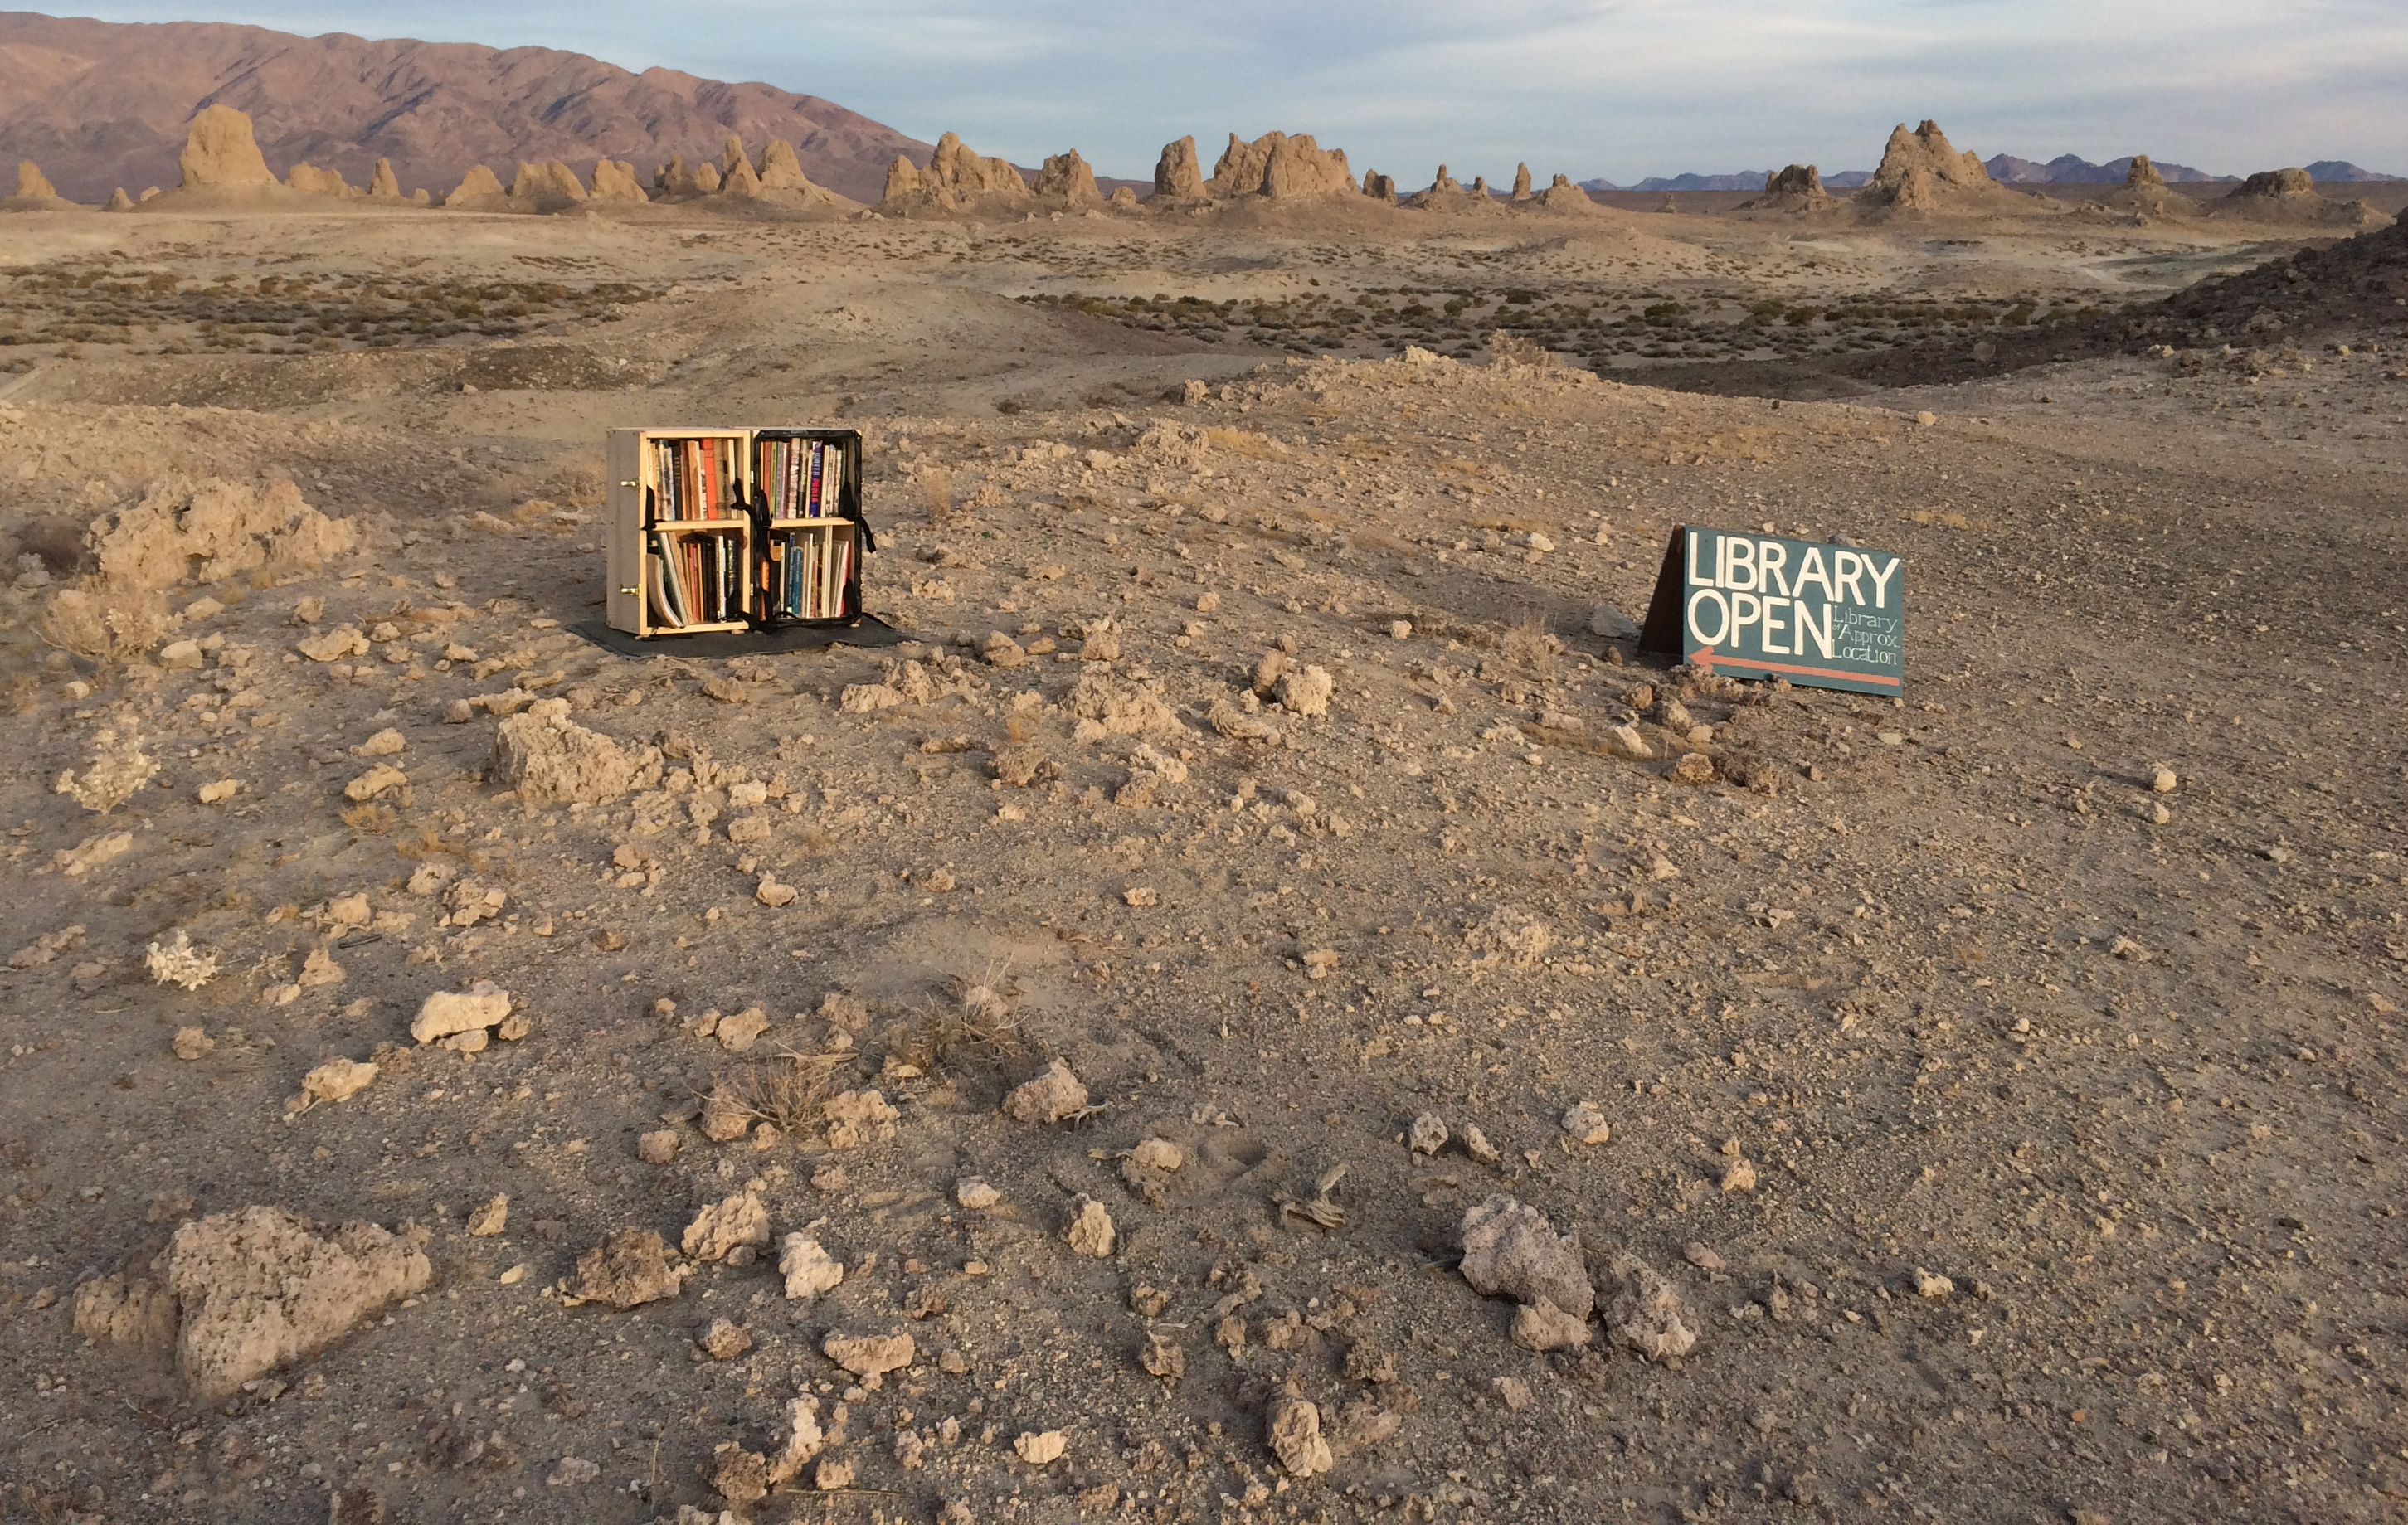 Library of Approximate Location installed at Trona Pinnacles